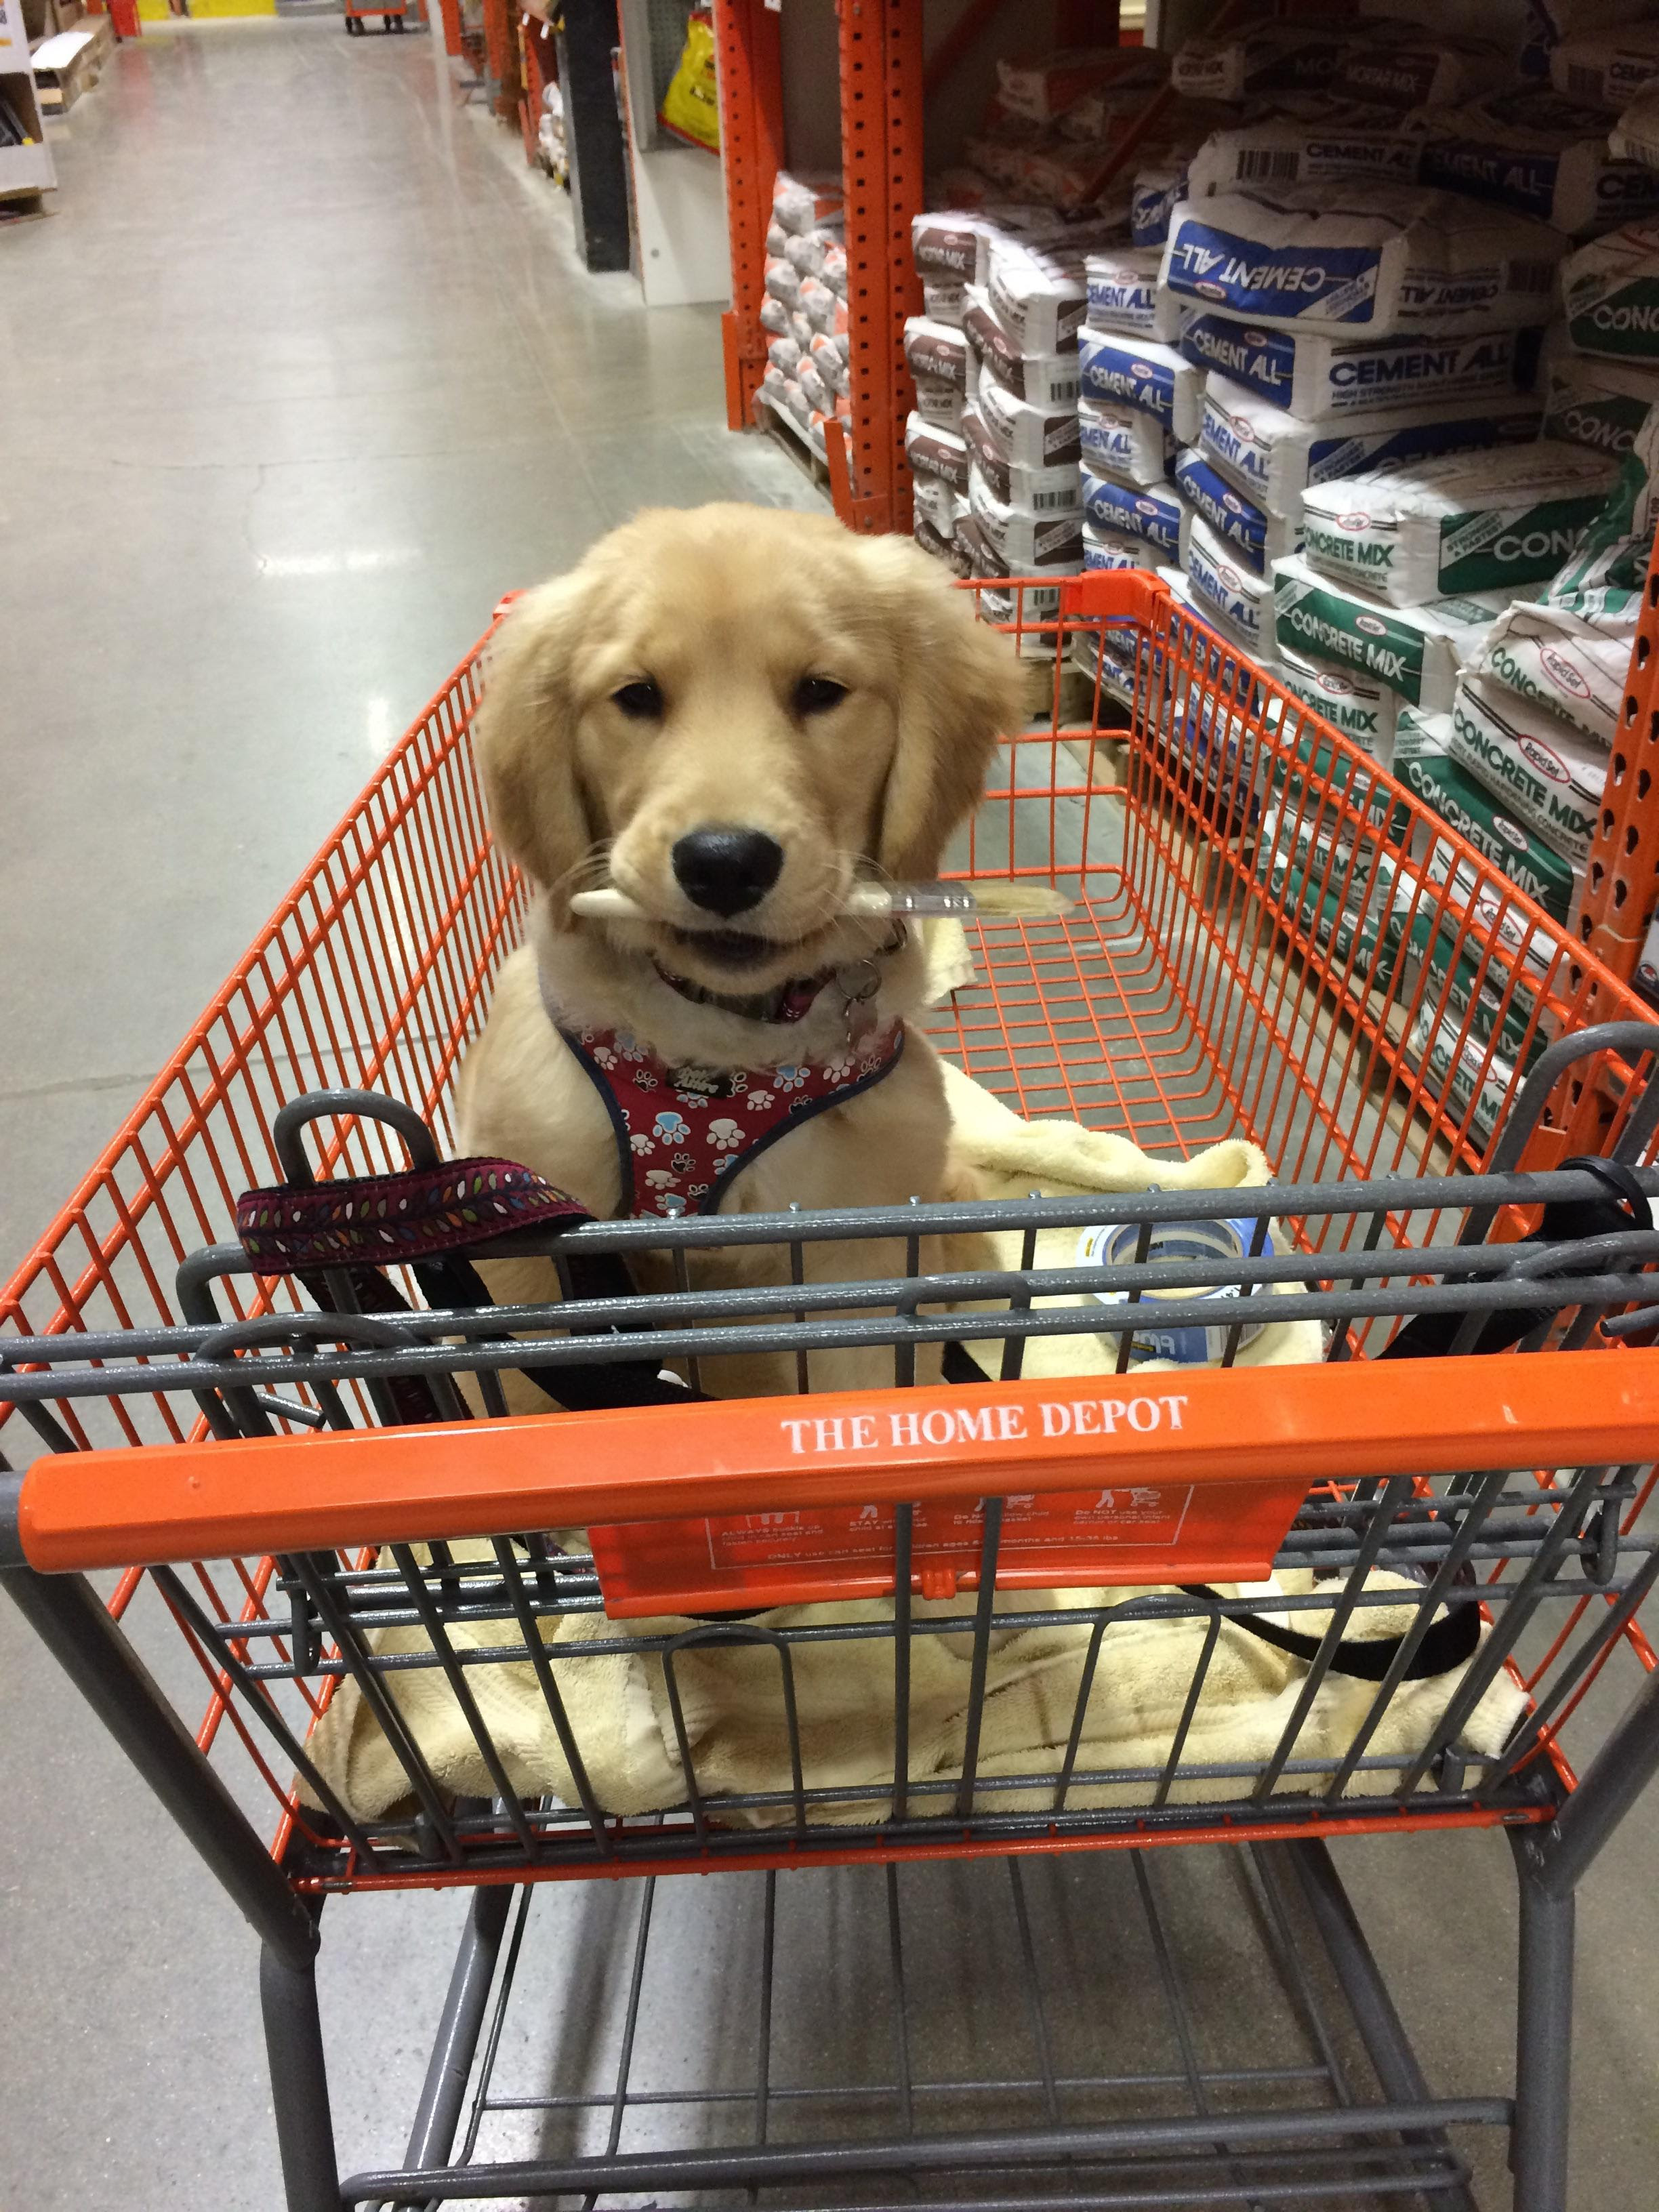 TIL Home Depot is puppy friendly aww